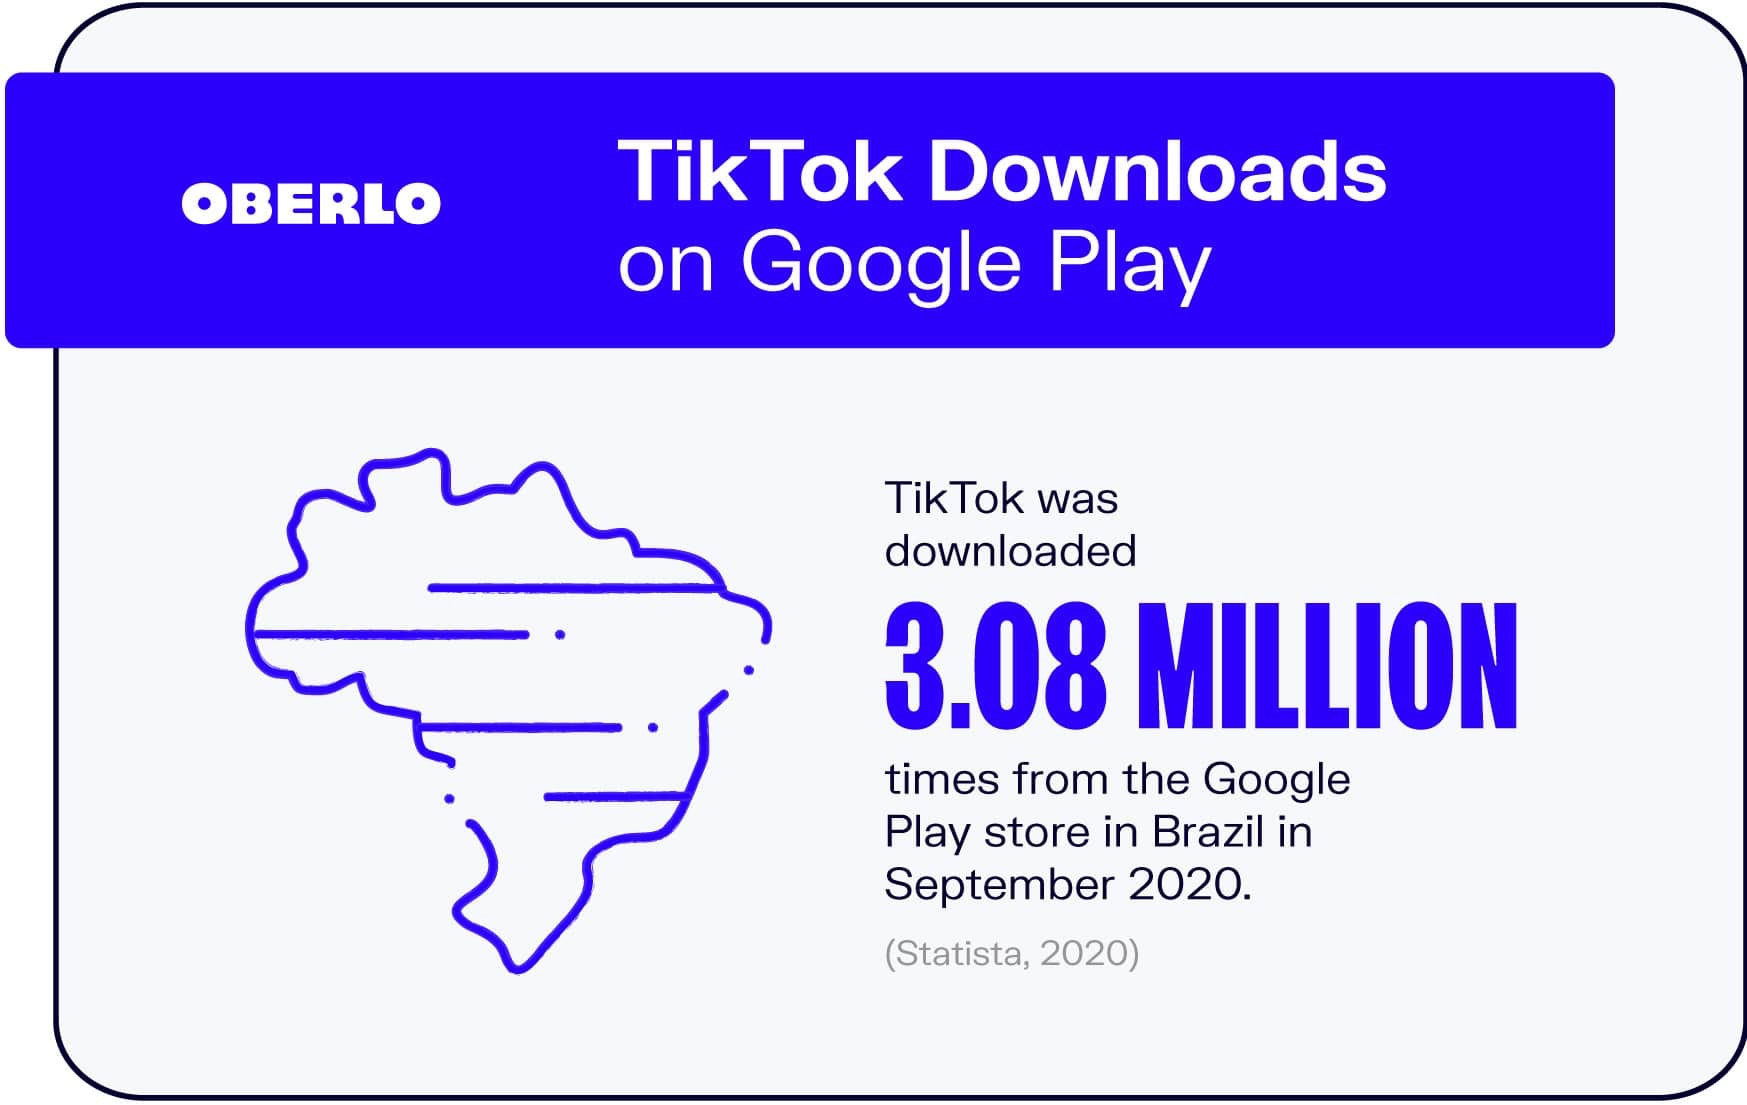 TikTok Downloads on Google Play